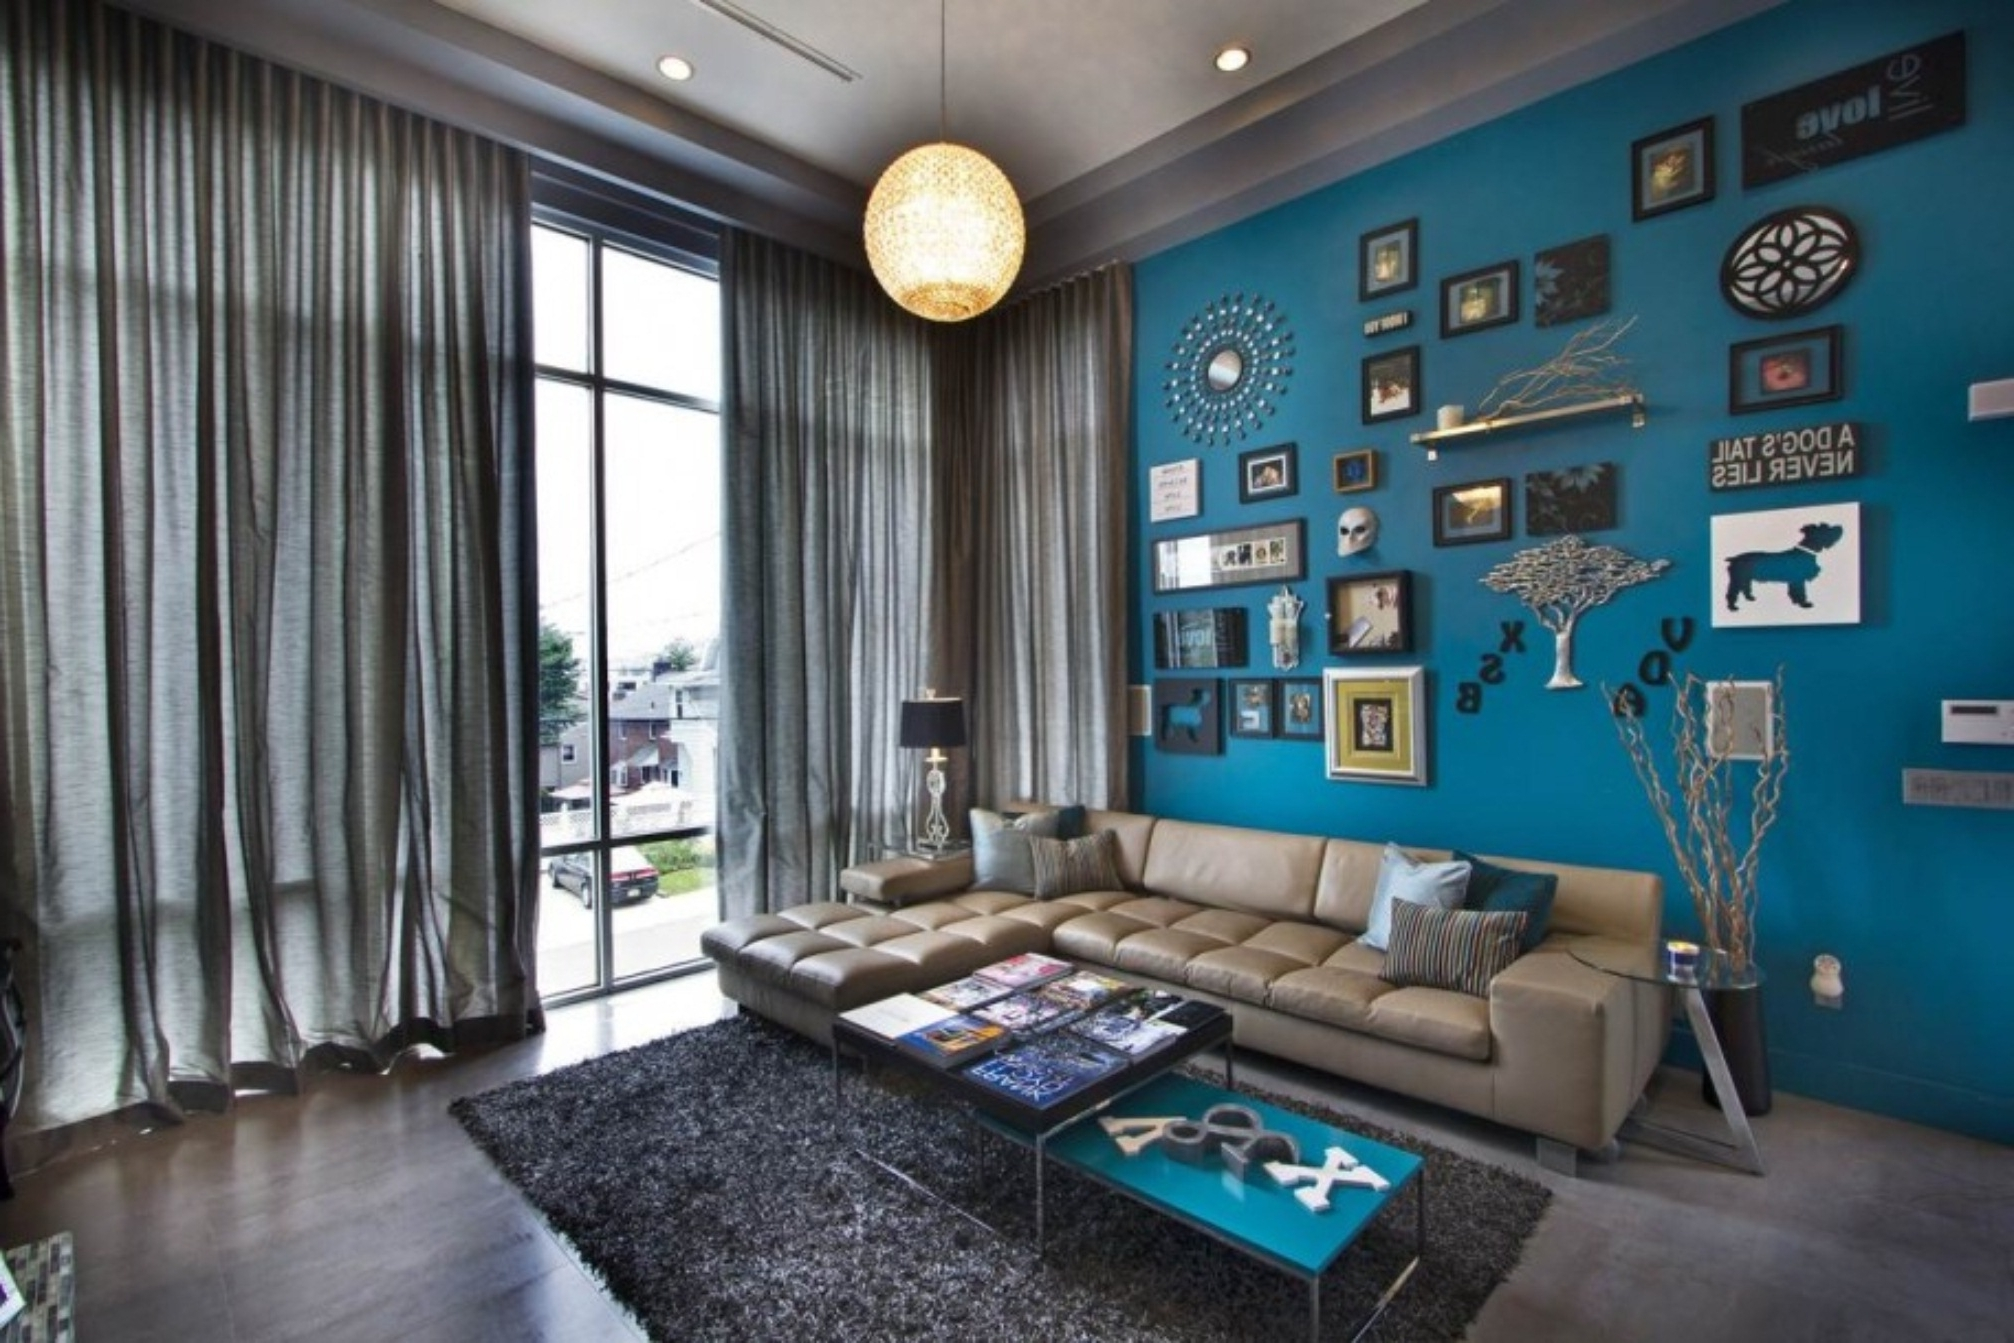 Amazing Of Awesome Blue Living Room Wall Color With L Sha #4013 Pertaining To Favorite Wall Accents For L Shaped Room (View 1 of 15)